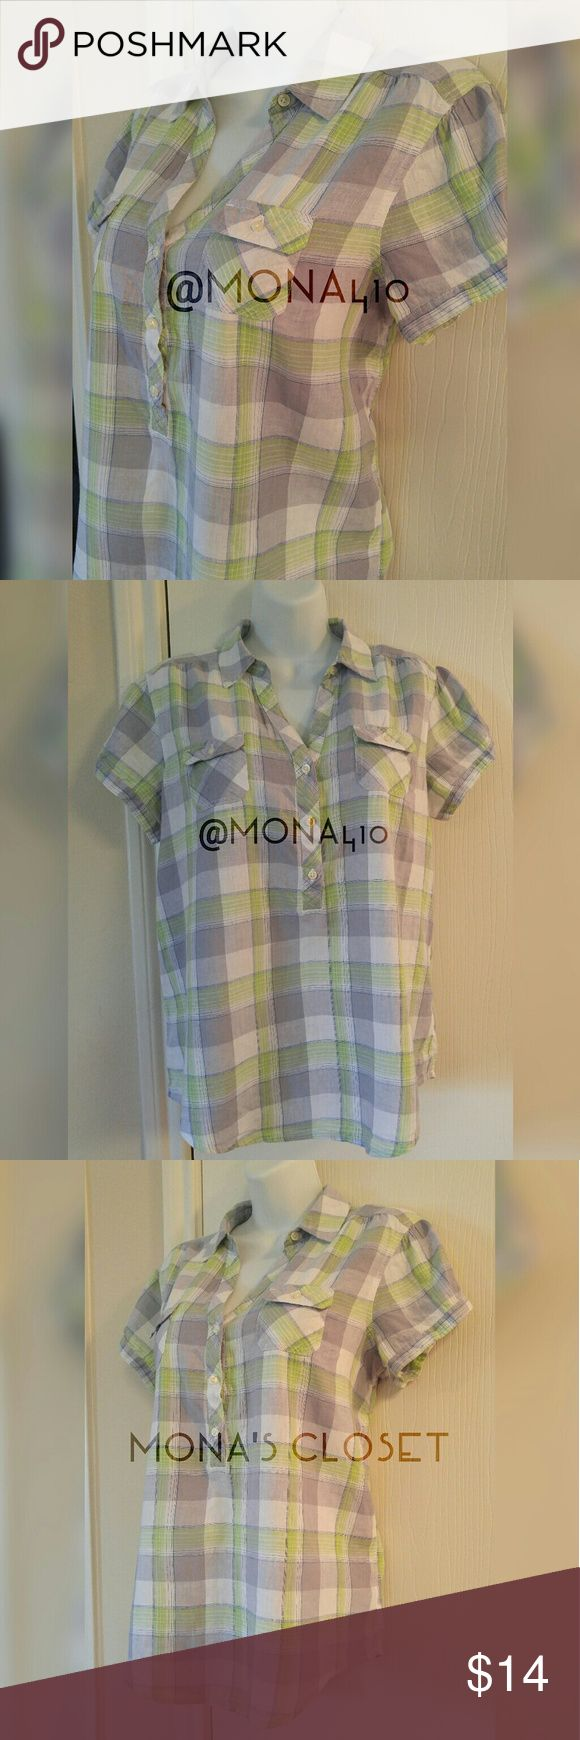 Old Navy Short-Sleeve Tunic Old Navy Short-Sleeve Top in Checkered Light Green & Gray. Two front flap pockets & single button opening on sleeves. 3-button front enclosure. Size Large. Made in Indonesia. Materials: Linen/Cotton. Lightly worn but EUC.  ✨✨Bundle & Save! 15% off bundles of 3+ items.✨ 🔹Smoke-free home 🔹Sorry, no trades or PayPal Old Navy Tops Tunics